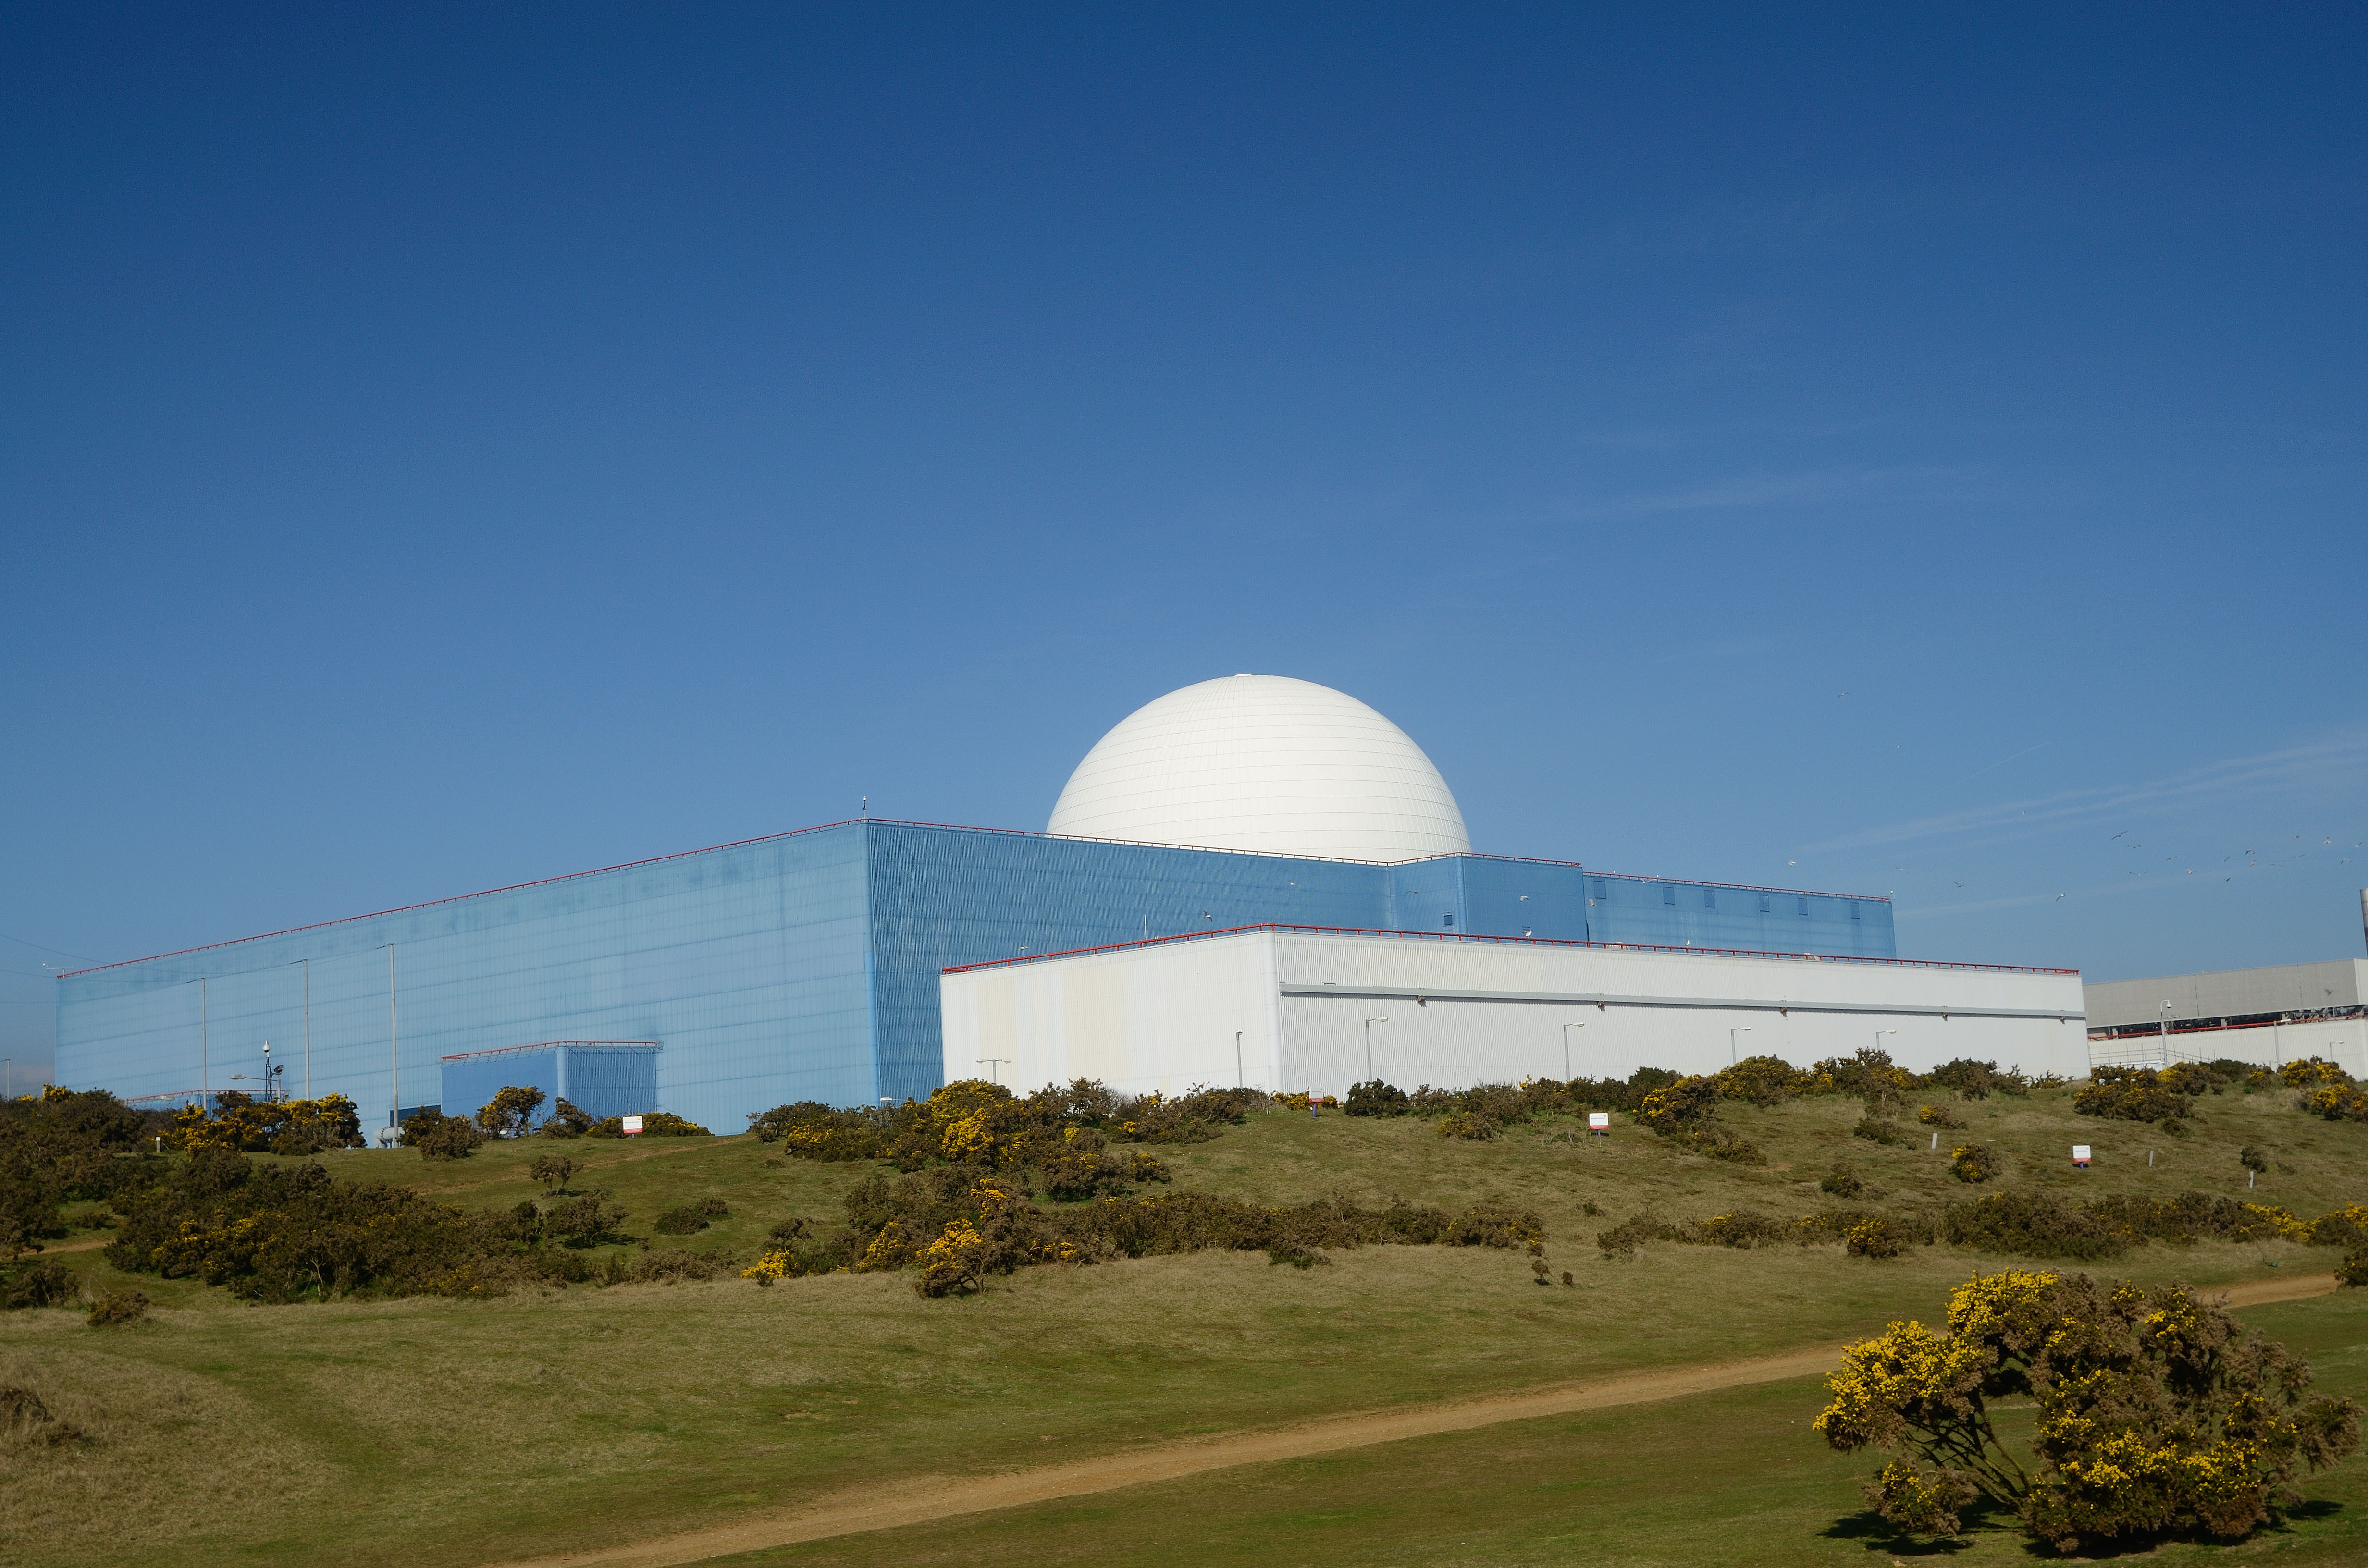 Sizewell B, the UK's only operating PWR